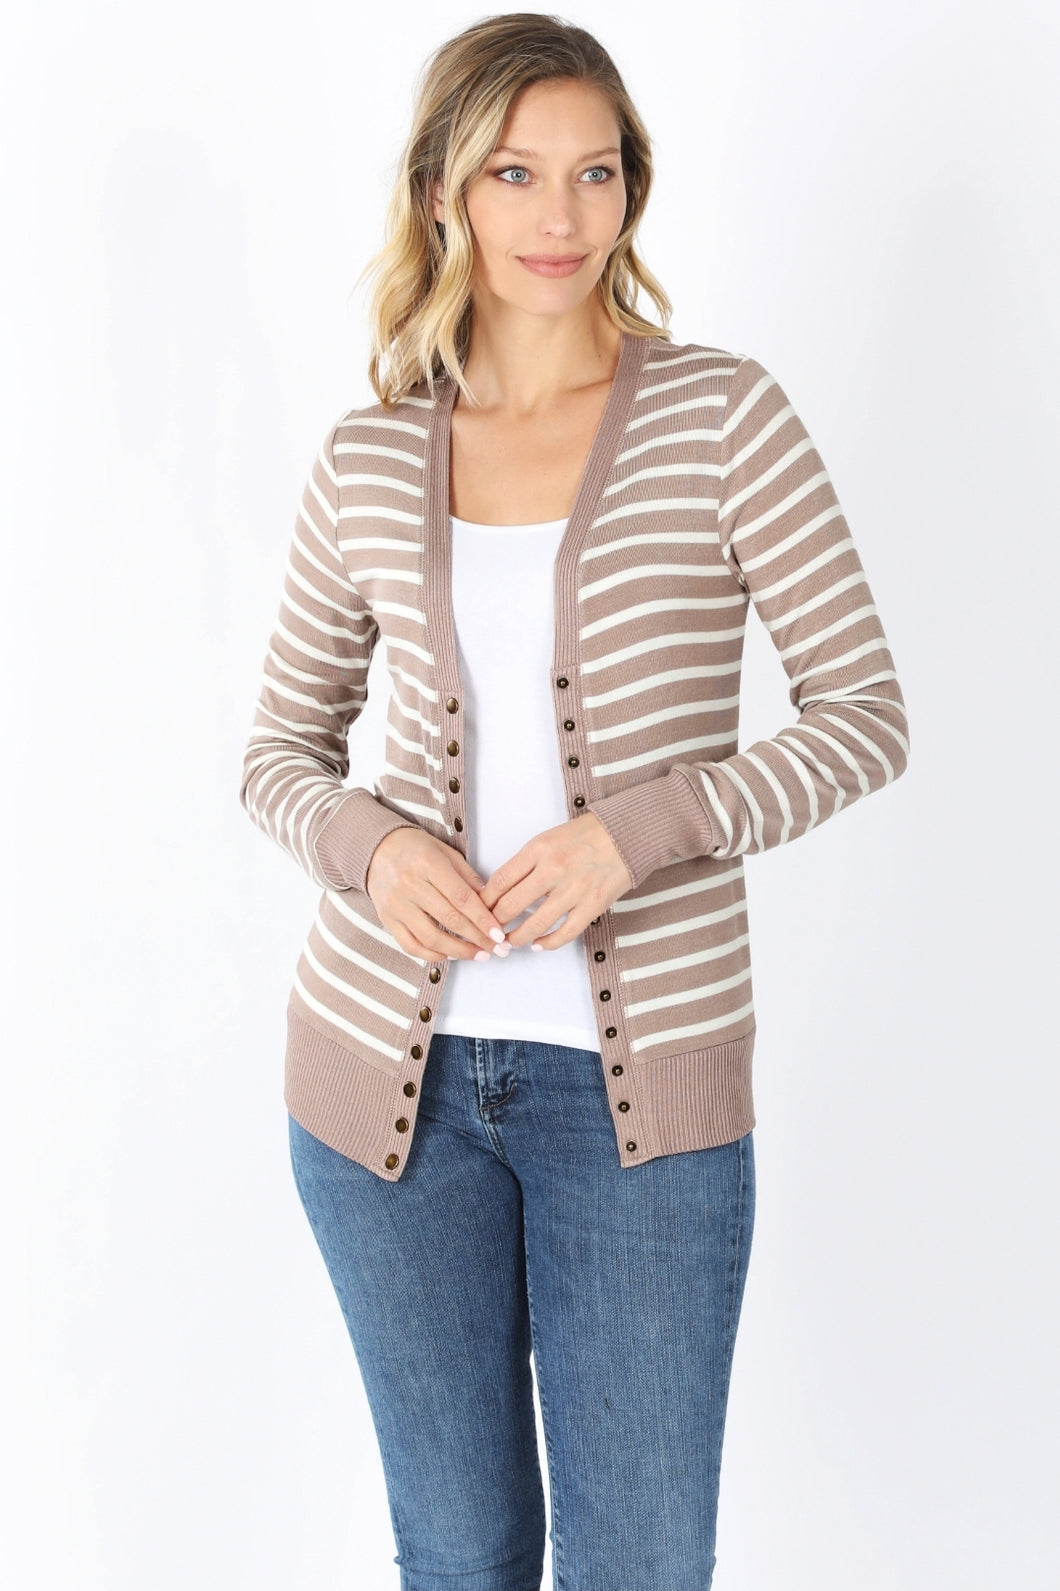 Striped Snap Up Cardigan - Regular - Ash Mocha / Ivory